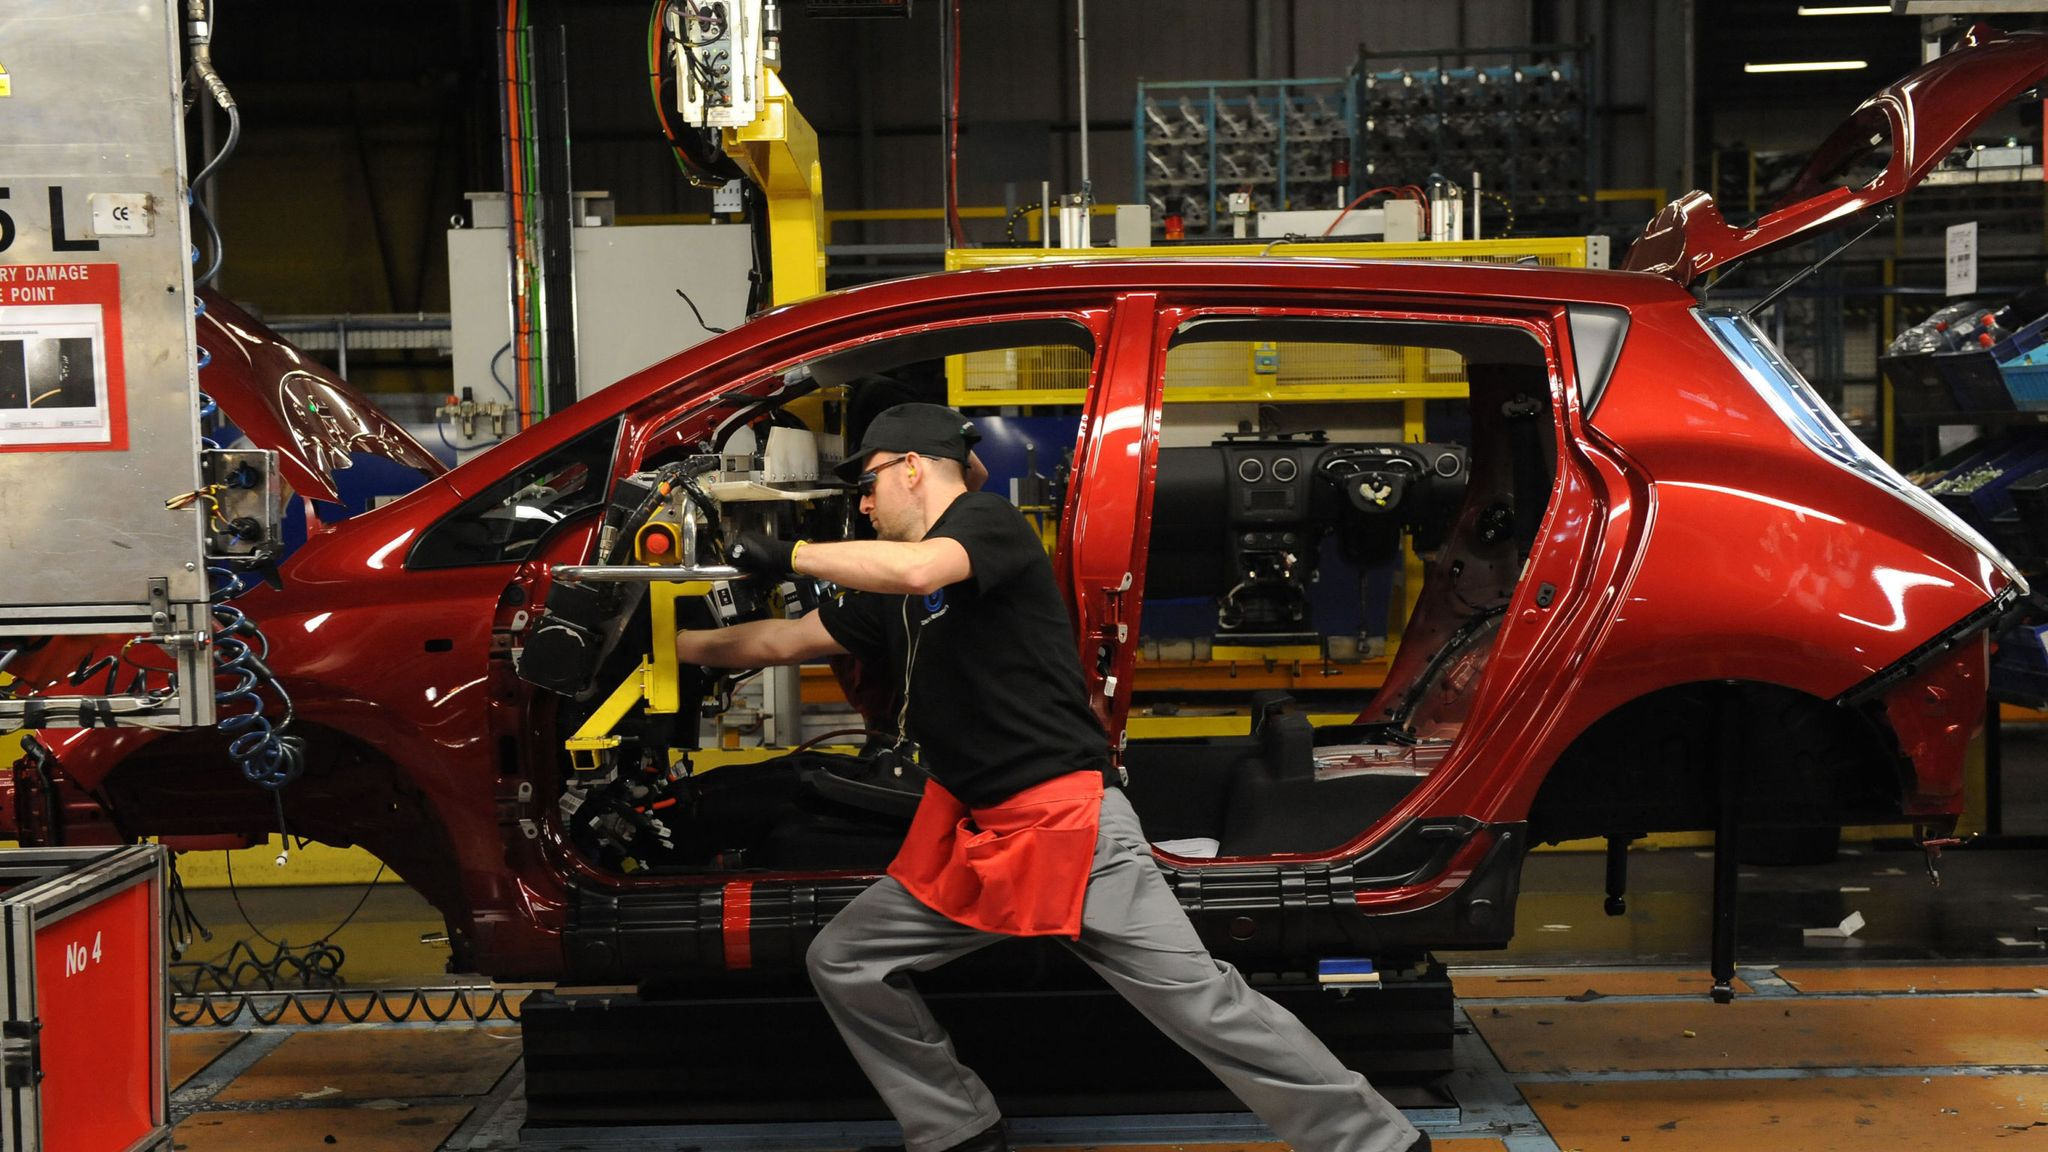 brexit fears putting 850,000 automotive jobs at risk, warns car